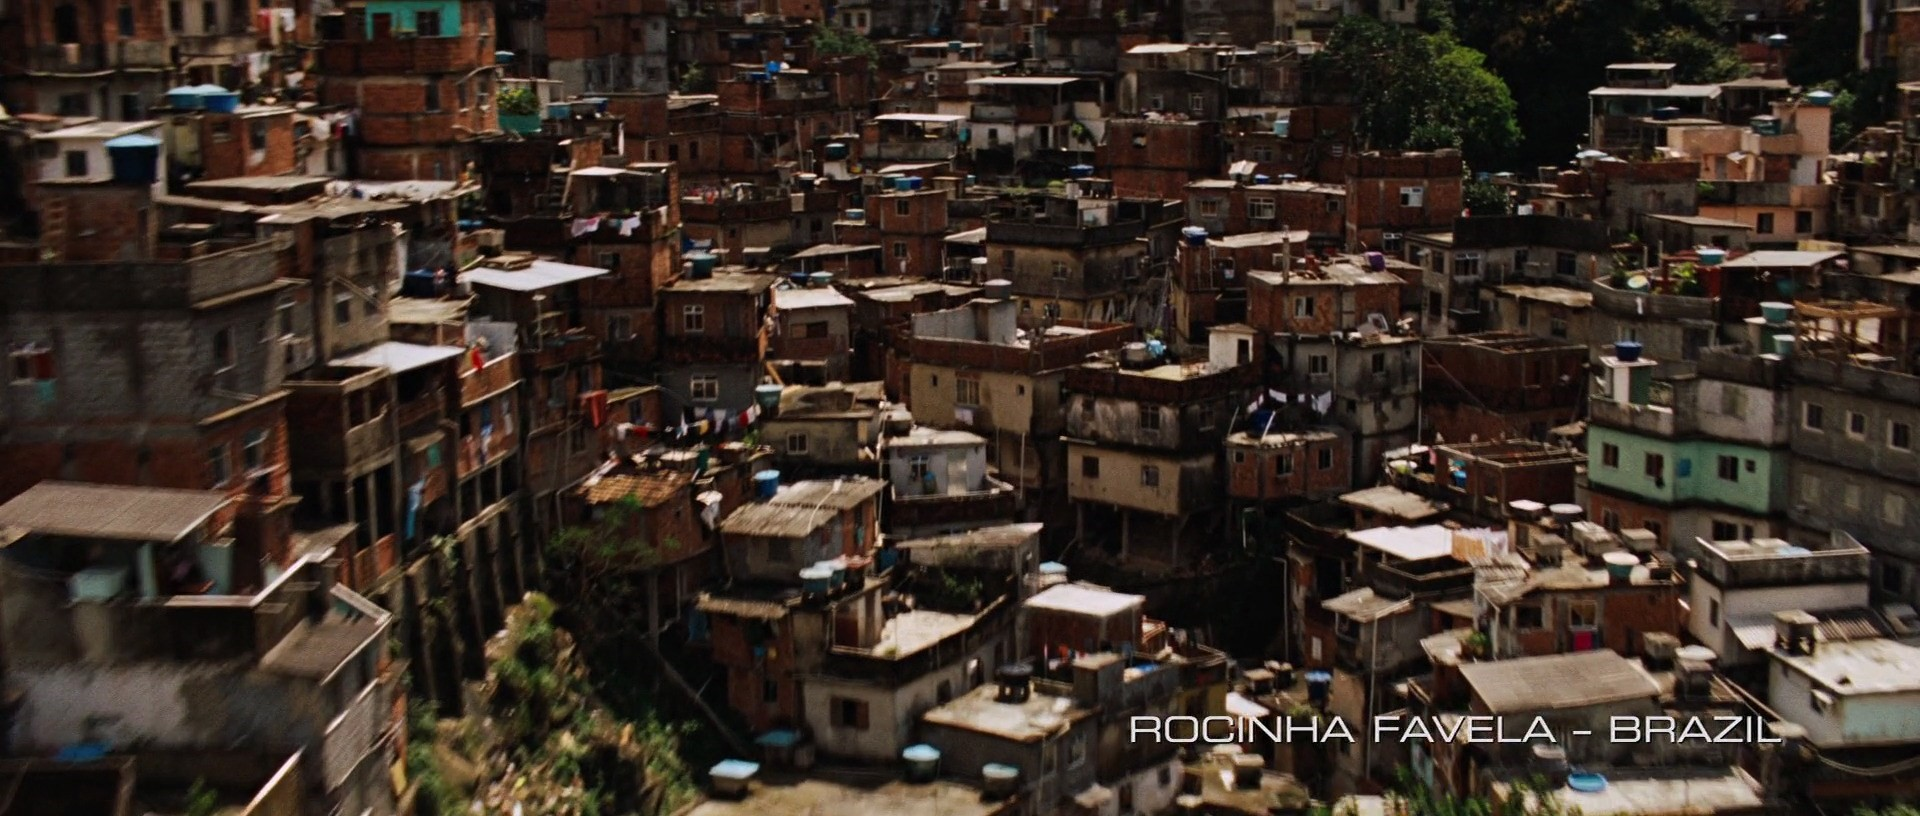 The Incredible Hulk Filming Locations | Rocinha Favela, Brazil